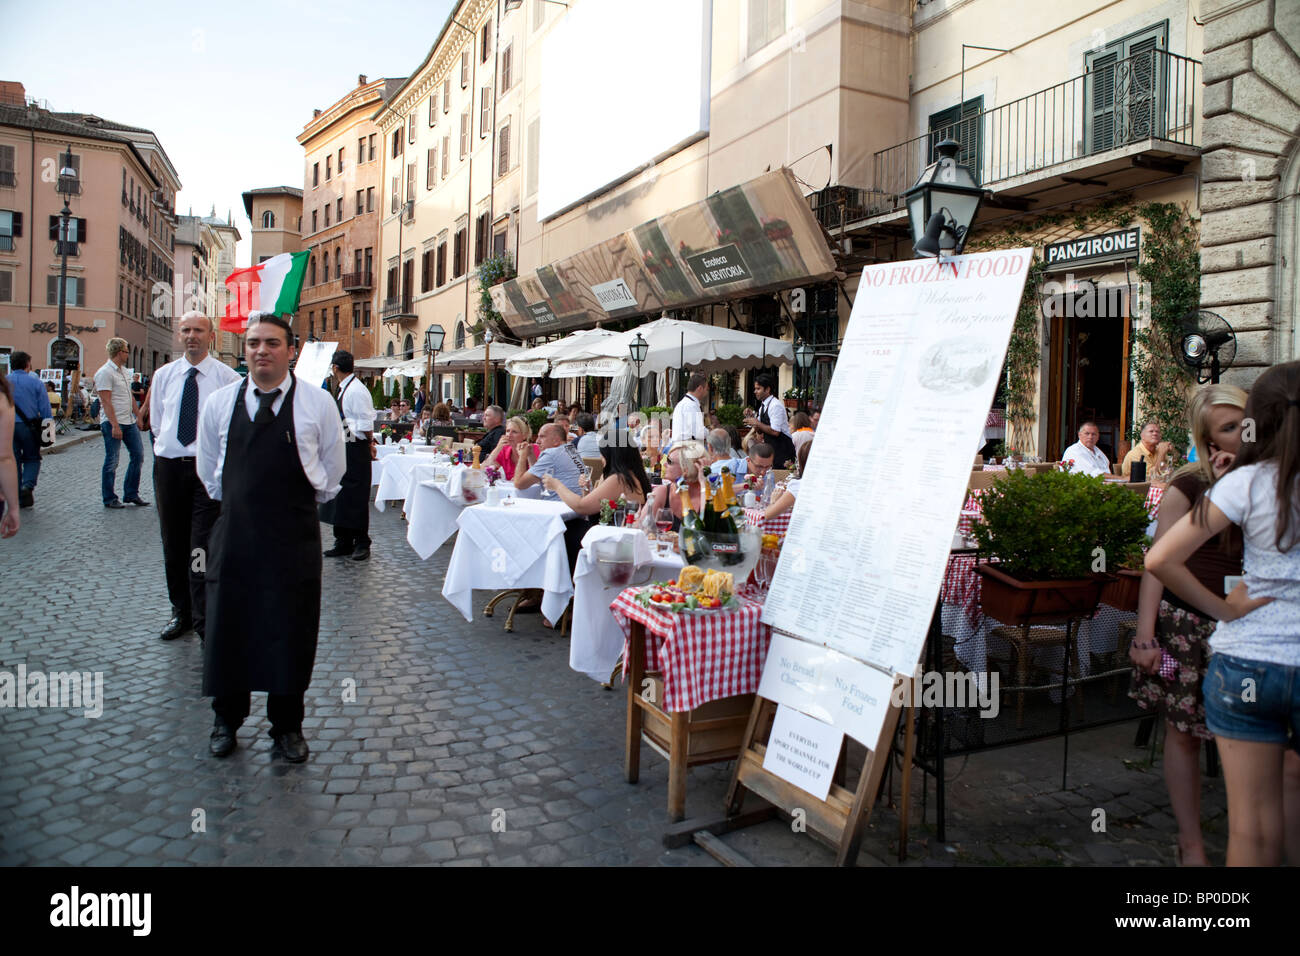 Waiters calling tourists at their restaurant .Italy, Rome, Piazza Navona. - Stock Image